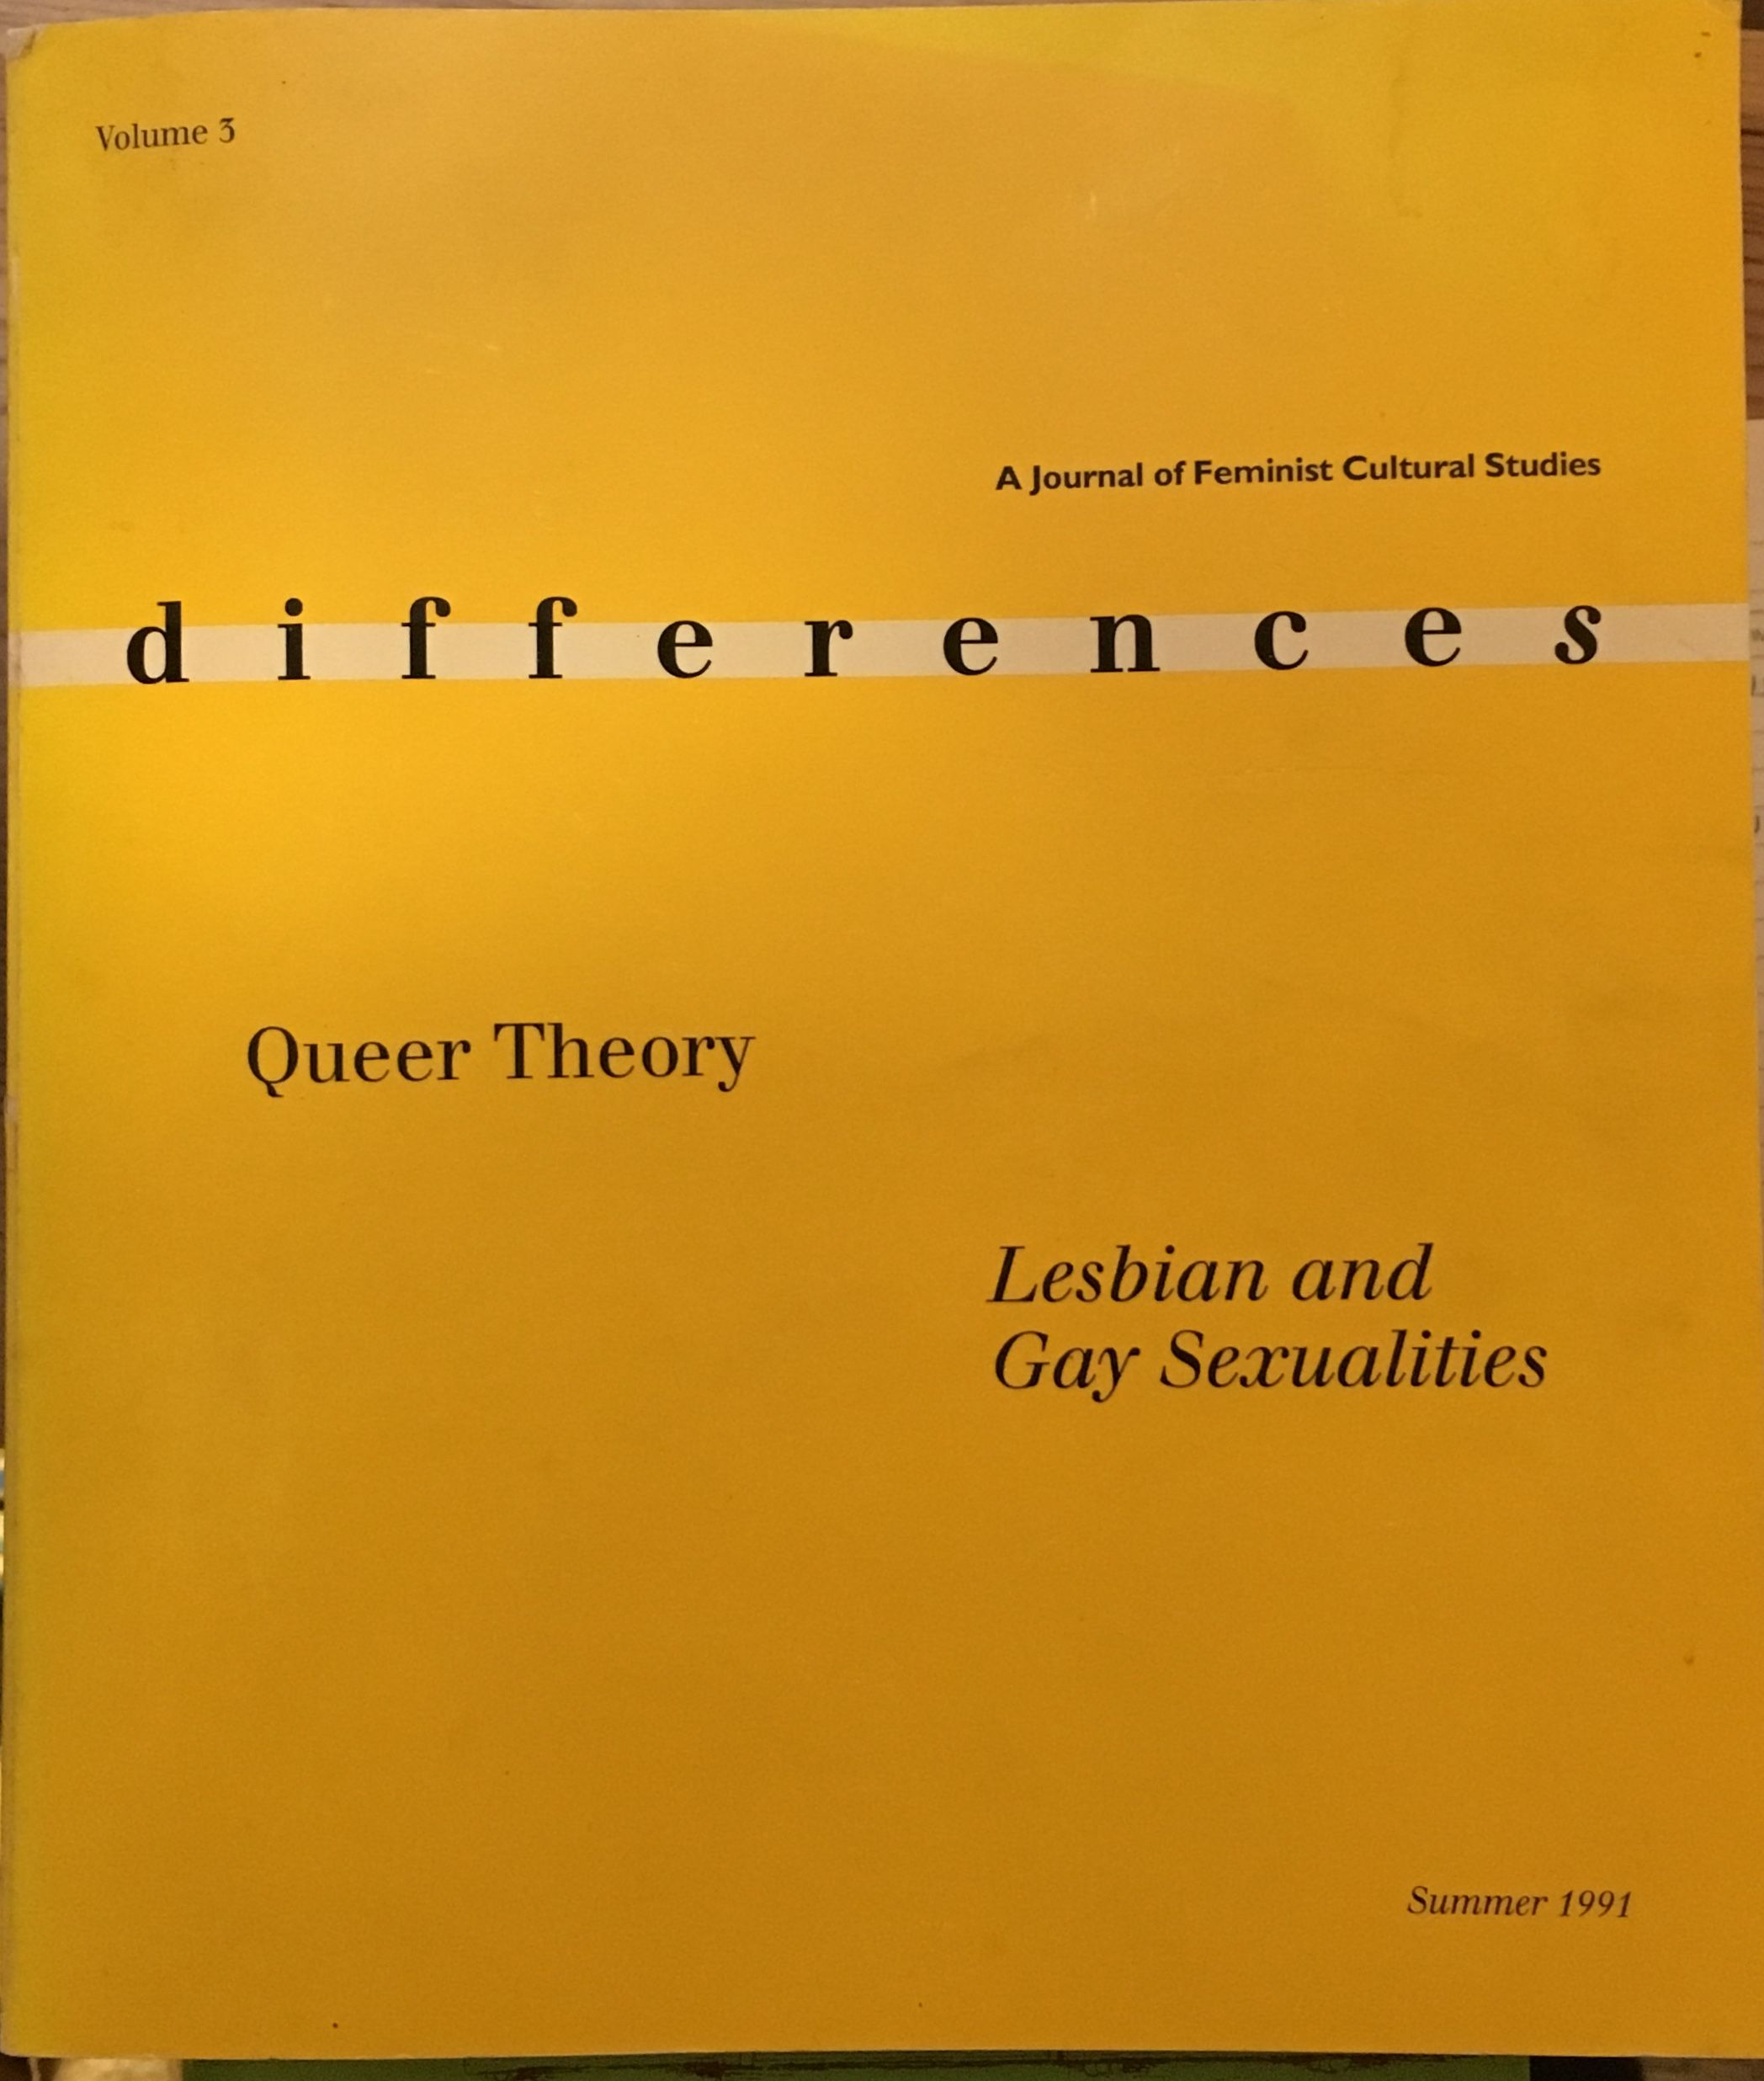 Differences: A Journal of Feminist Cultural Studies, Vol. 3: Queer Studies: Lesbian and Gay Sexualities, Naomi Schor [Editor]; Elizabeth Weed [Editor];